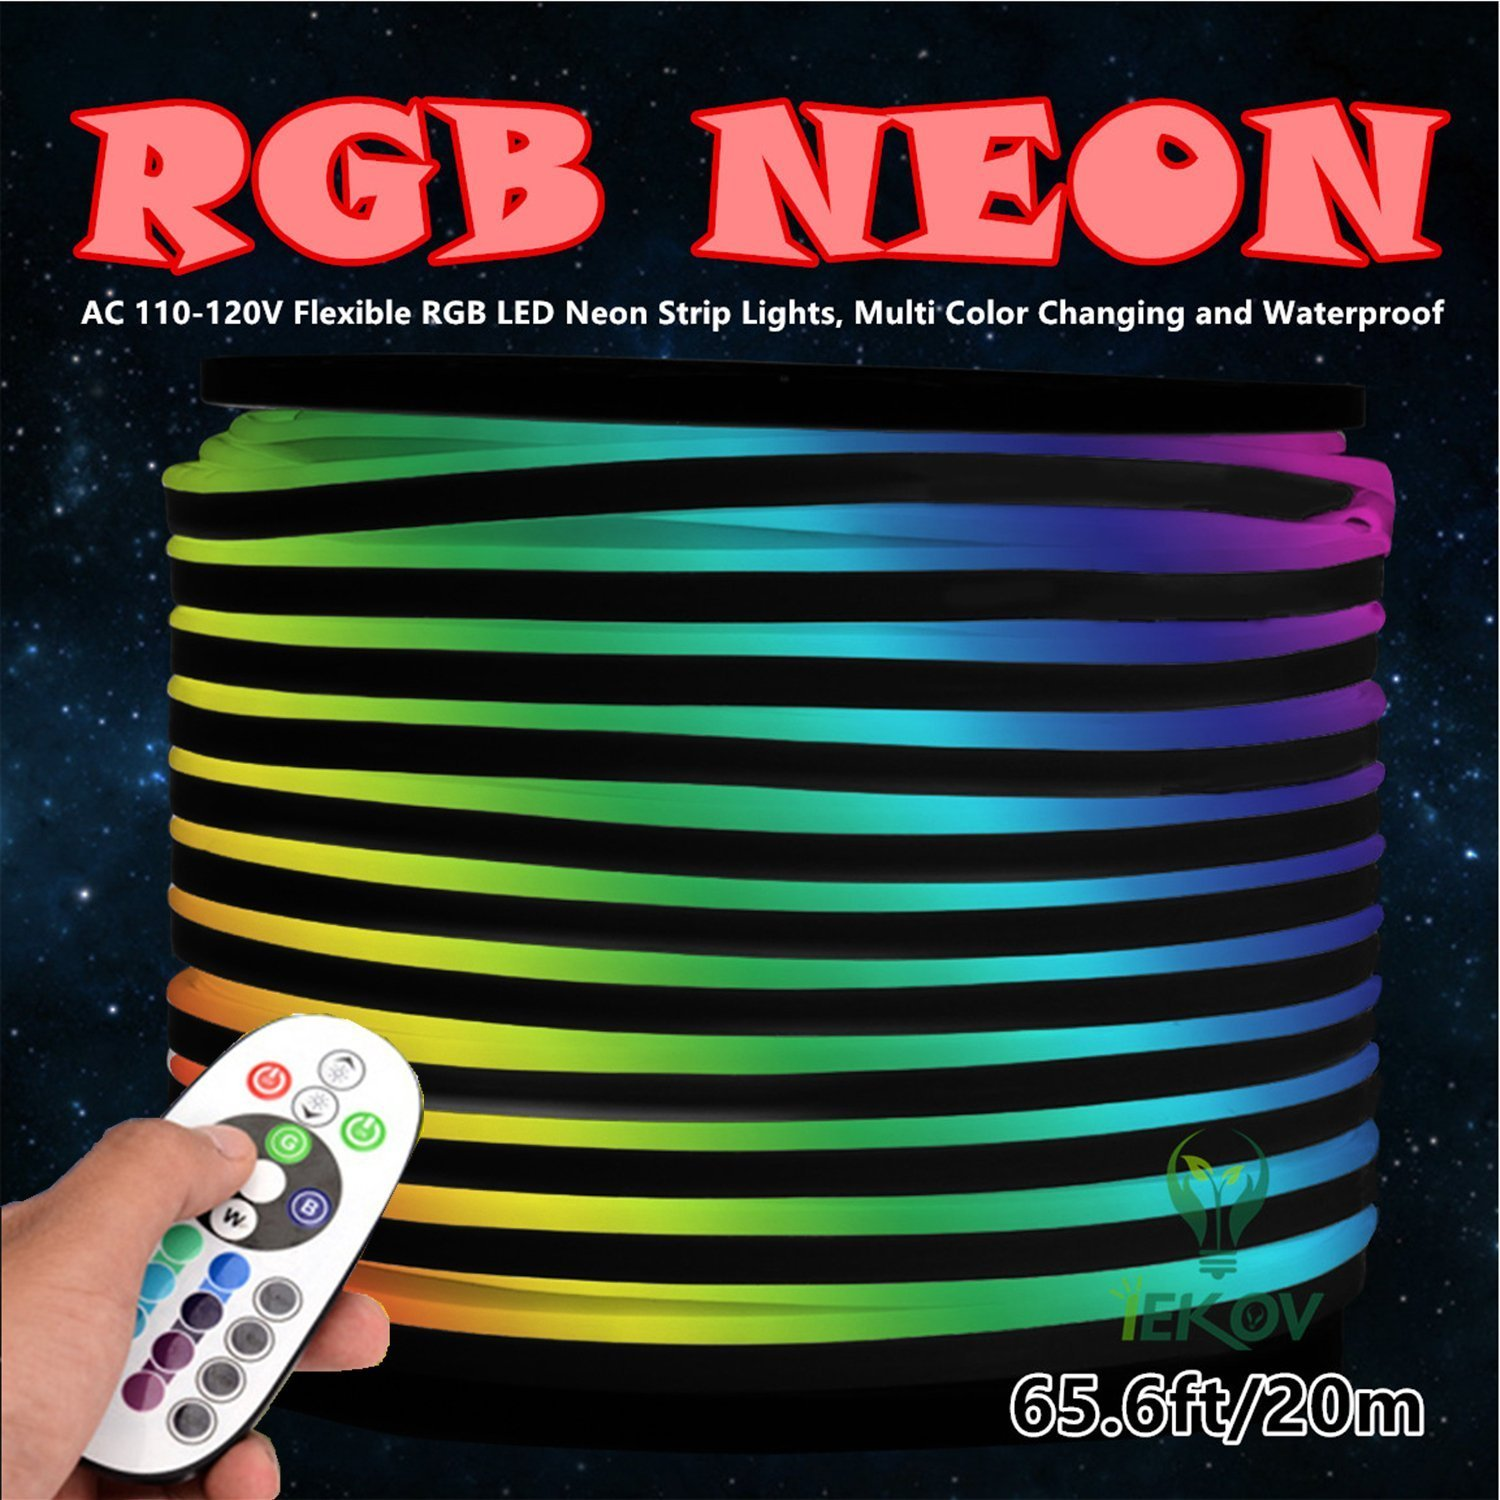 LED NEON LIGHT, IEKOV AC 110-120V Flexible RGB LED Neon Light Strip, 60 LEDs/M, Waterproof, Multi Color Changing 5050 SMD LED Rope Light + Remote Controller for Party Decoration (65.6ft/ 20m) by IEKOV (Image #3)